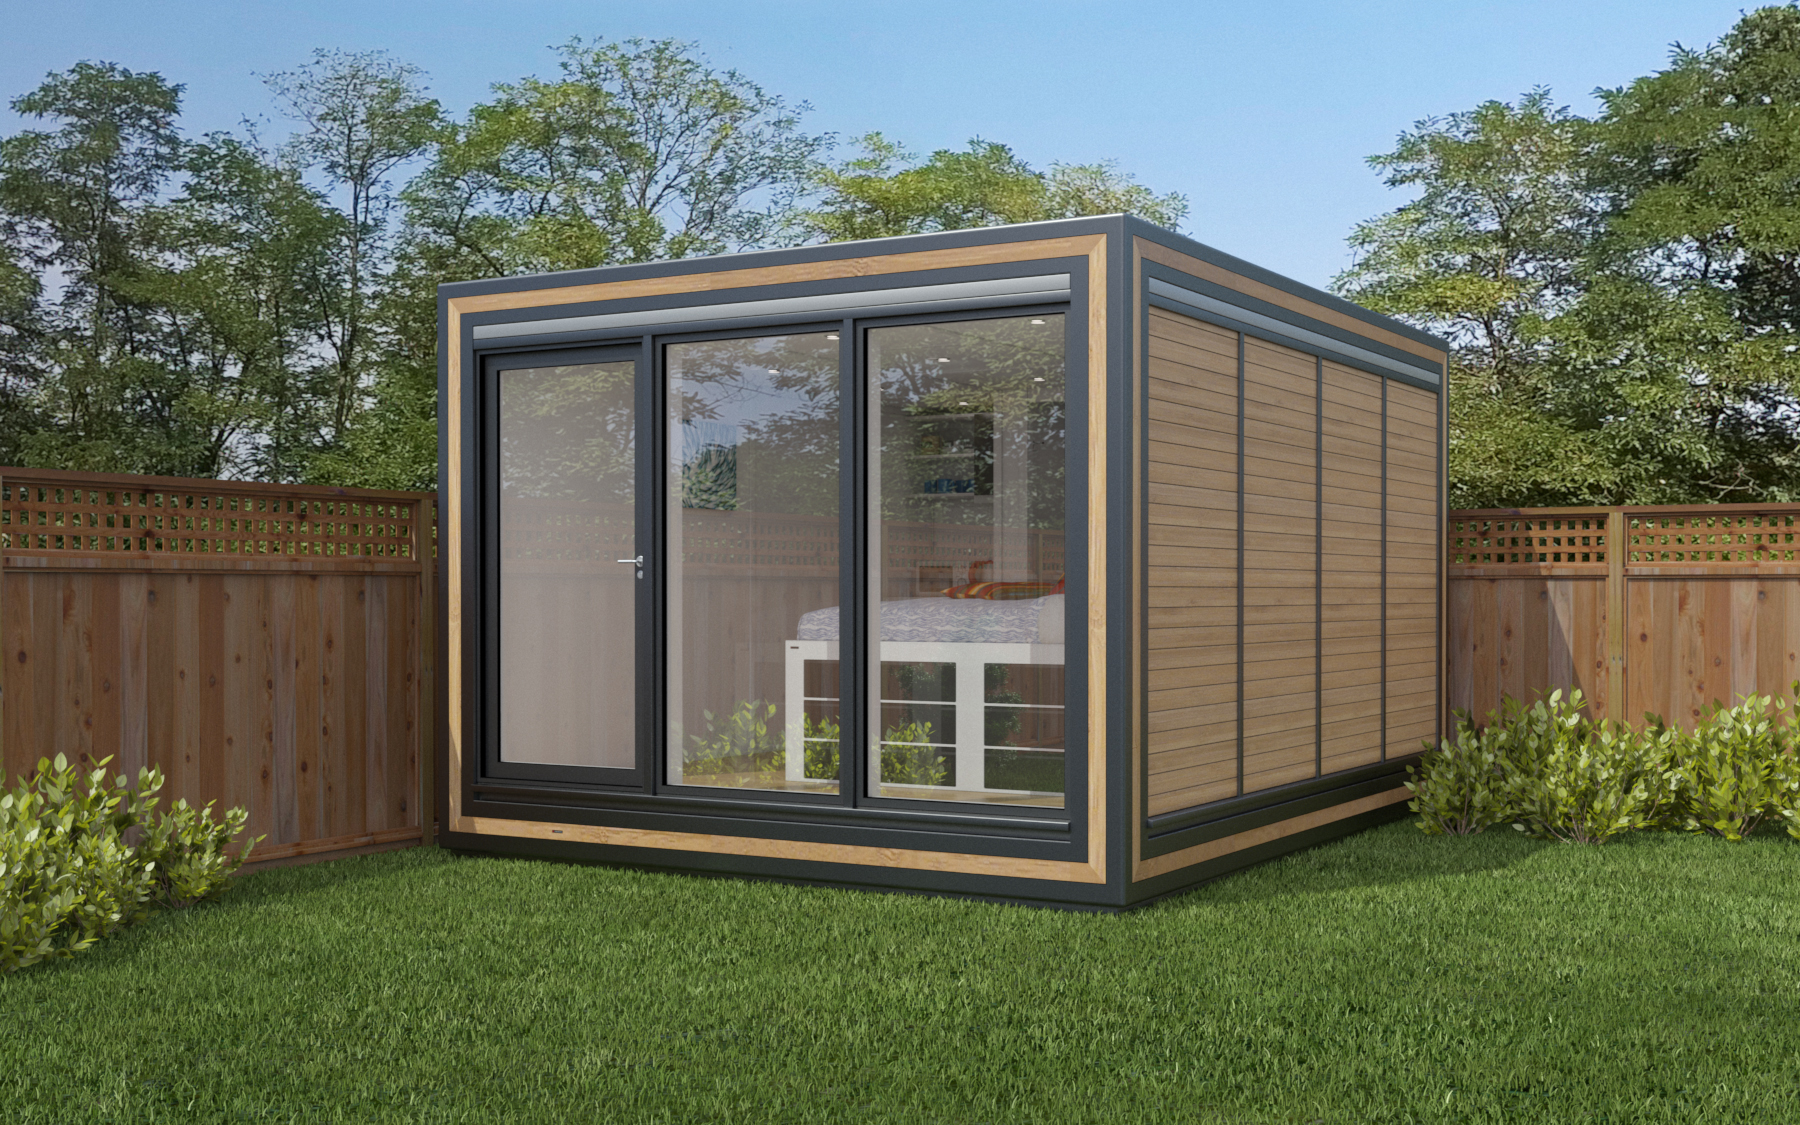 ZEDBOX 340  (3 x 4)  Internal Size: 3188 x 4259  External Size: 3658 x 4279  Bed Options: Single or Double  Kitchen Options: Micro Kitchen or Kitchen  Wet Room Options: Yes  Portico: No  Price:  £28,000    Optional Extras    Request Zedbox Catalogue